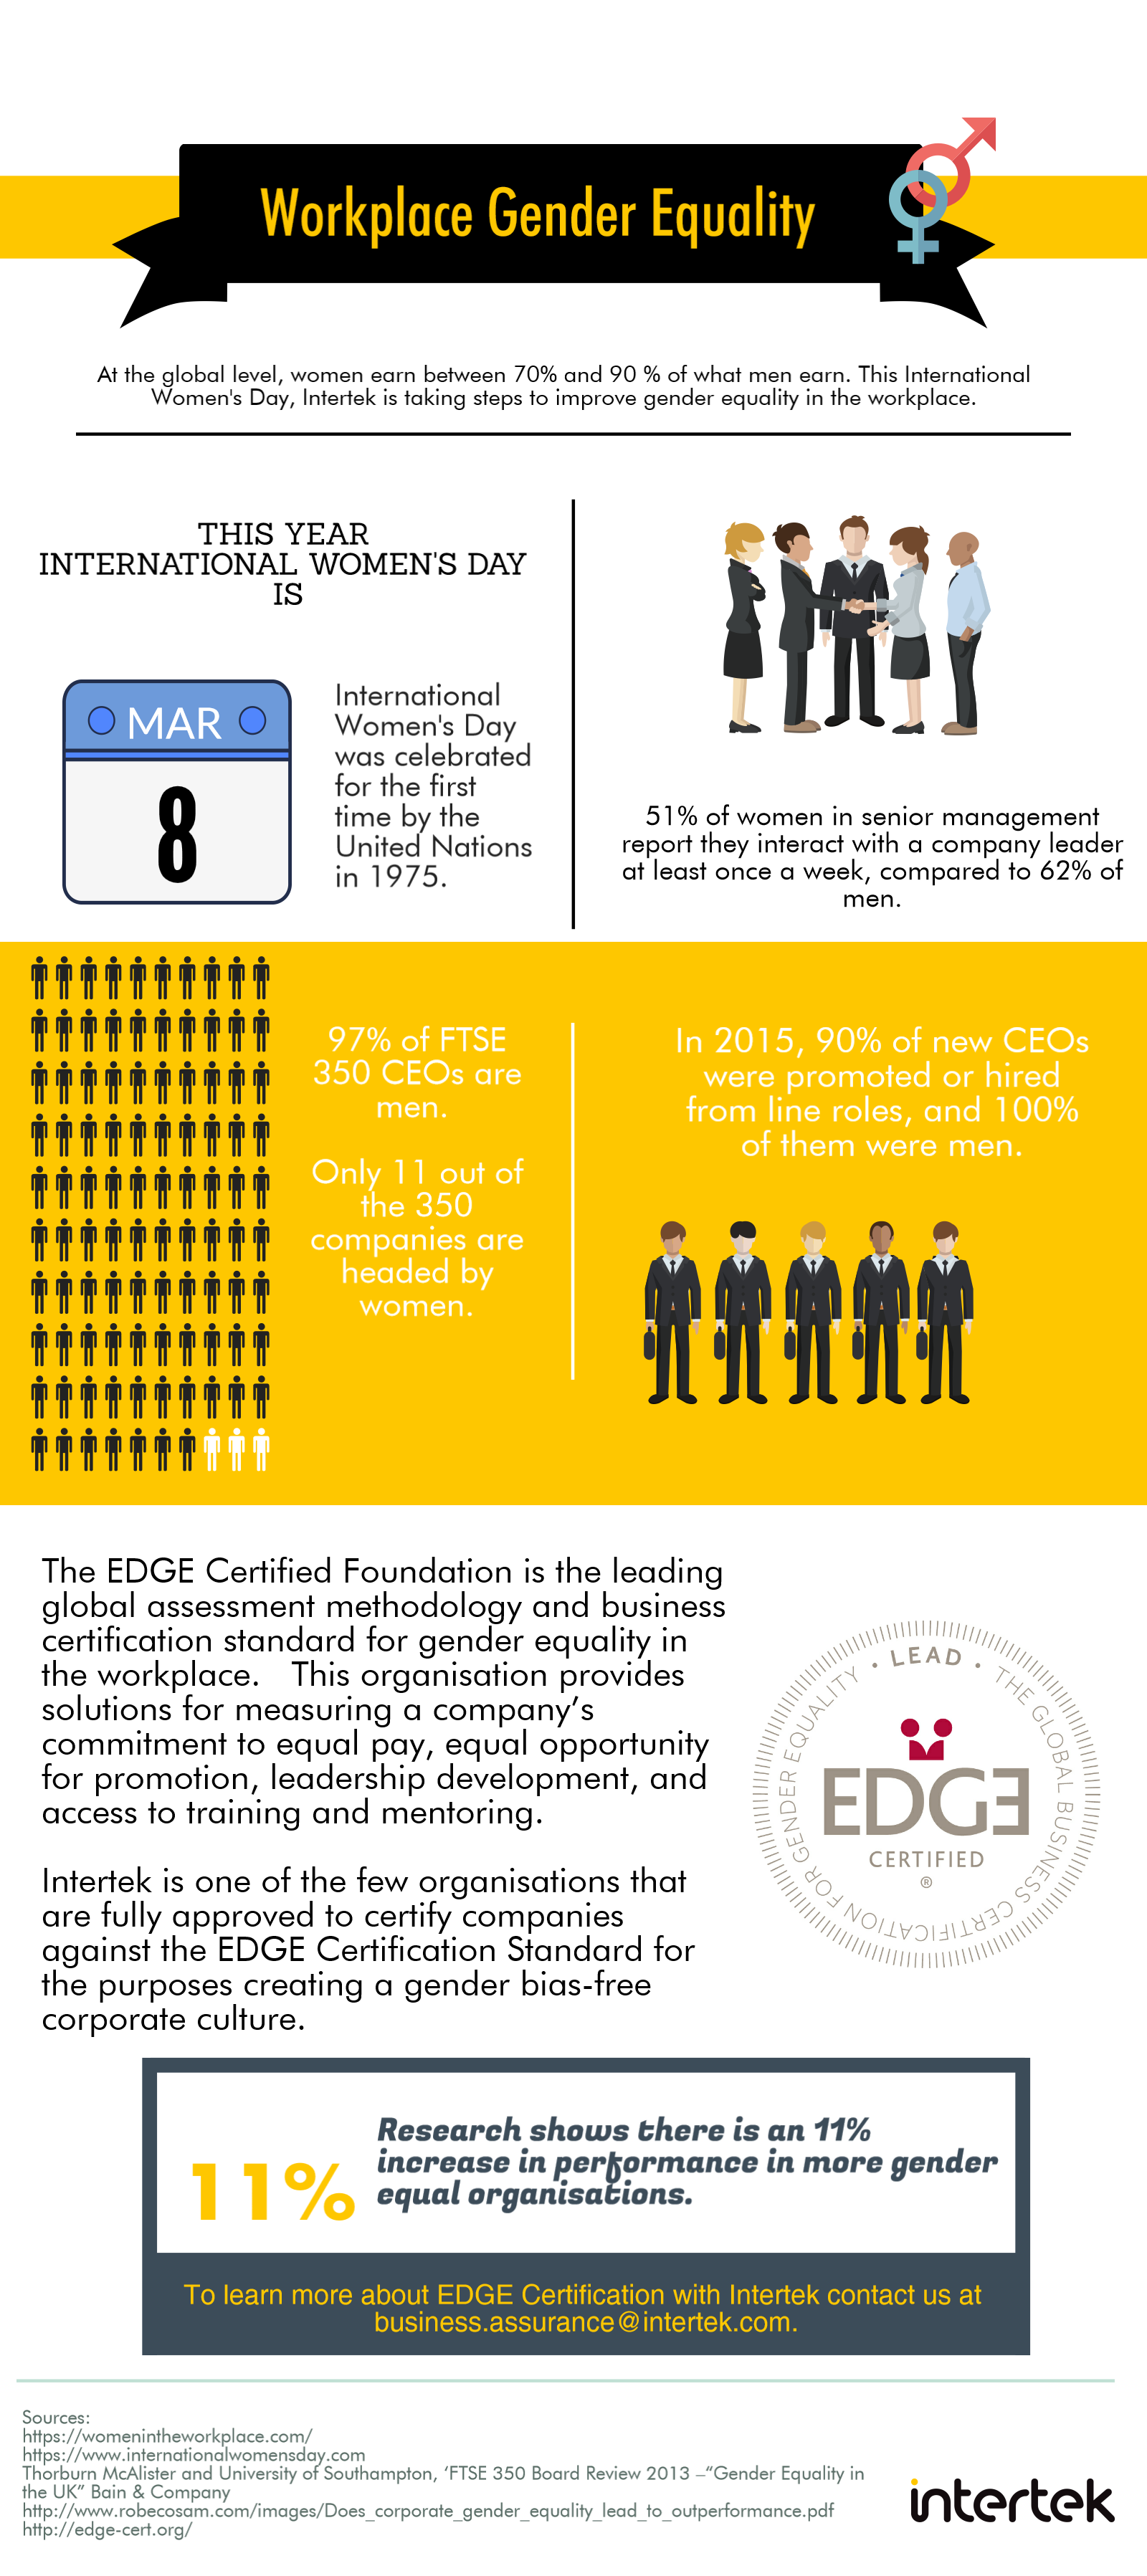 Edge Certification Bringing Gender Equality To The Forefront